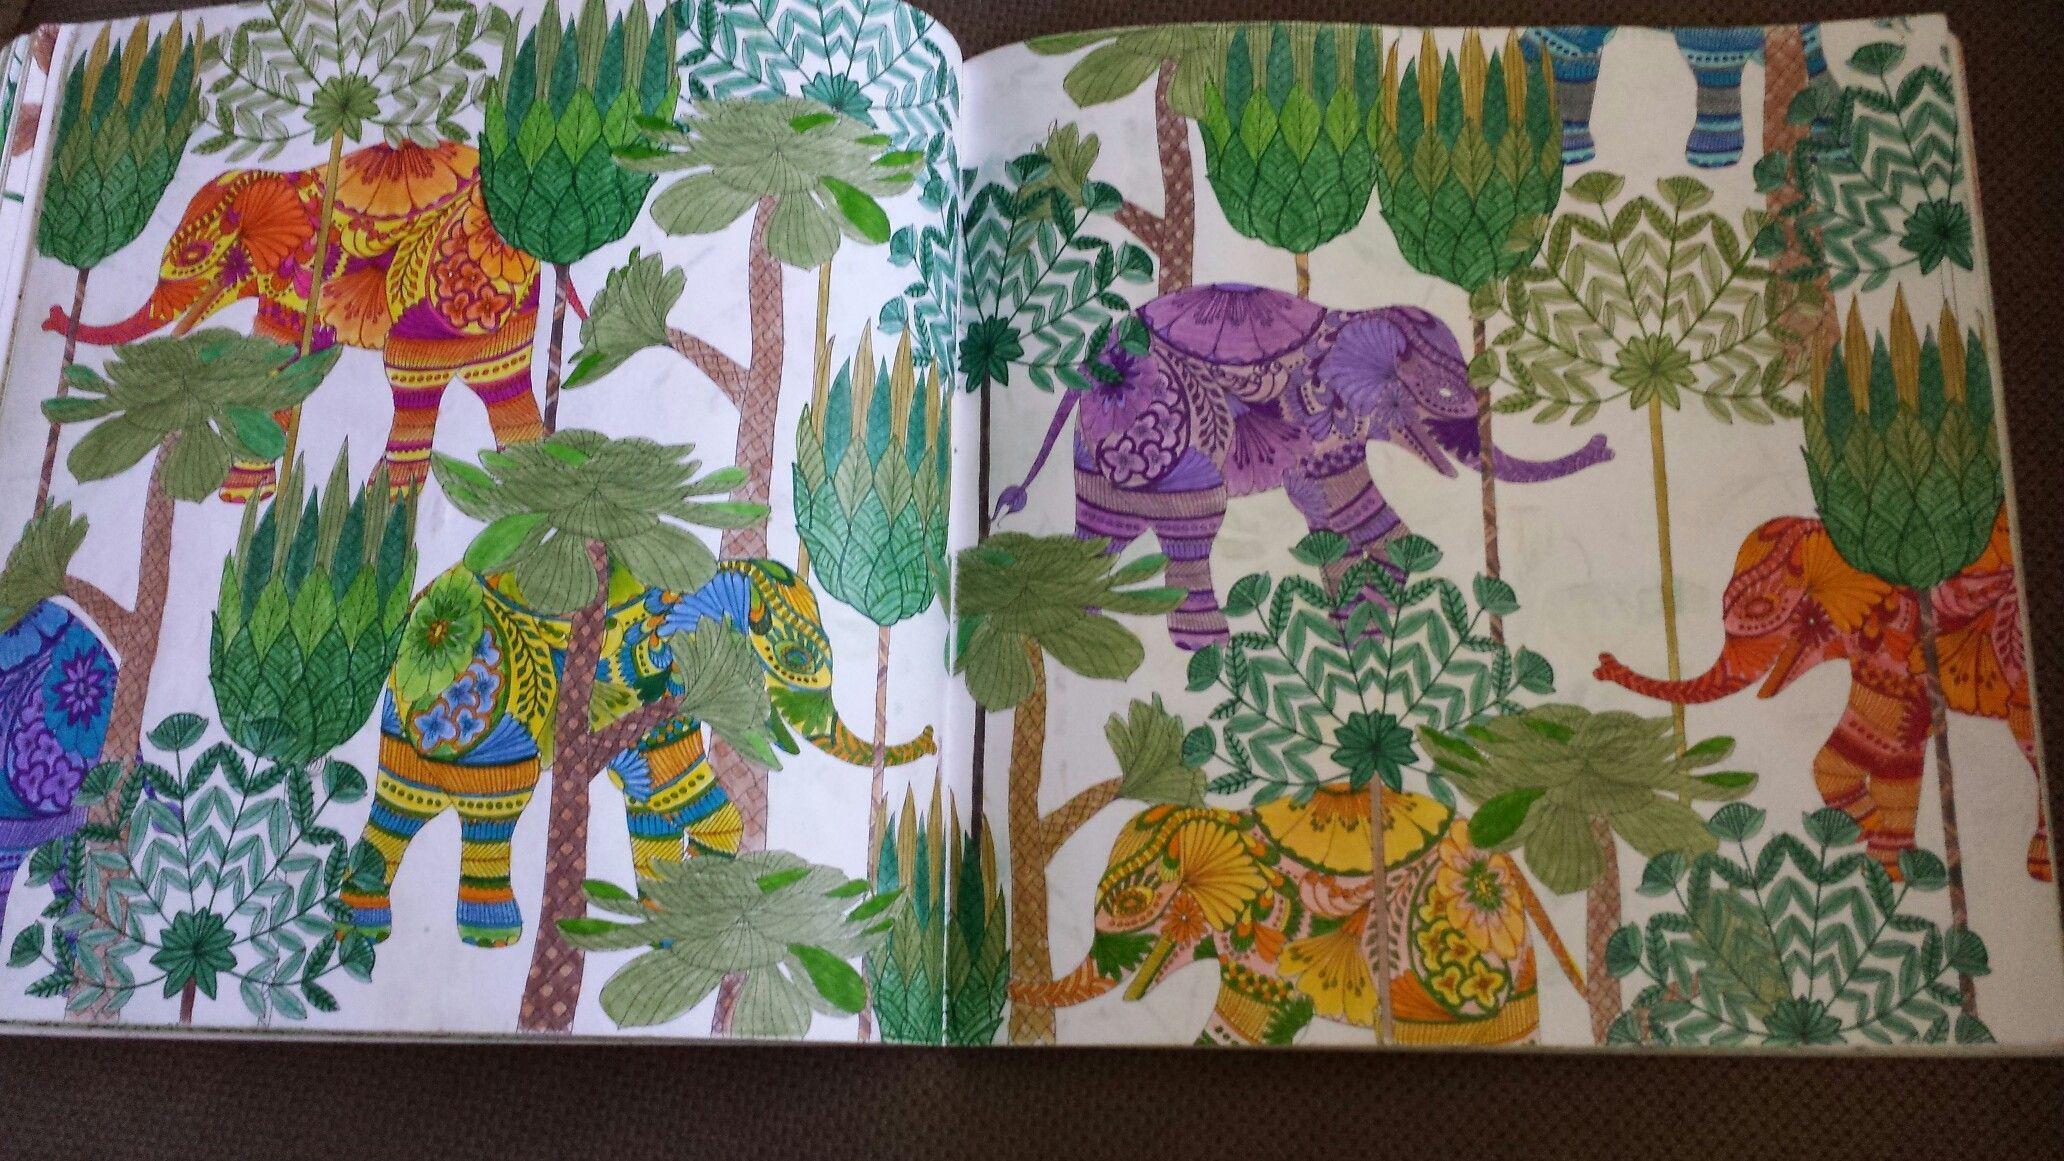 Millie Marotta Tropical World Coloring Book Millie Marotta Tropical Wonderland Millie Marotta Tropical Coloring Books